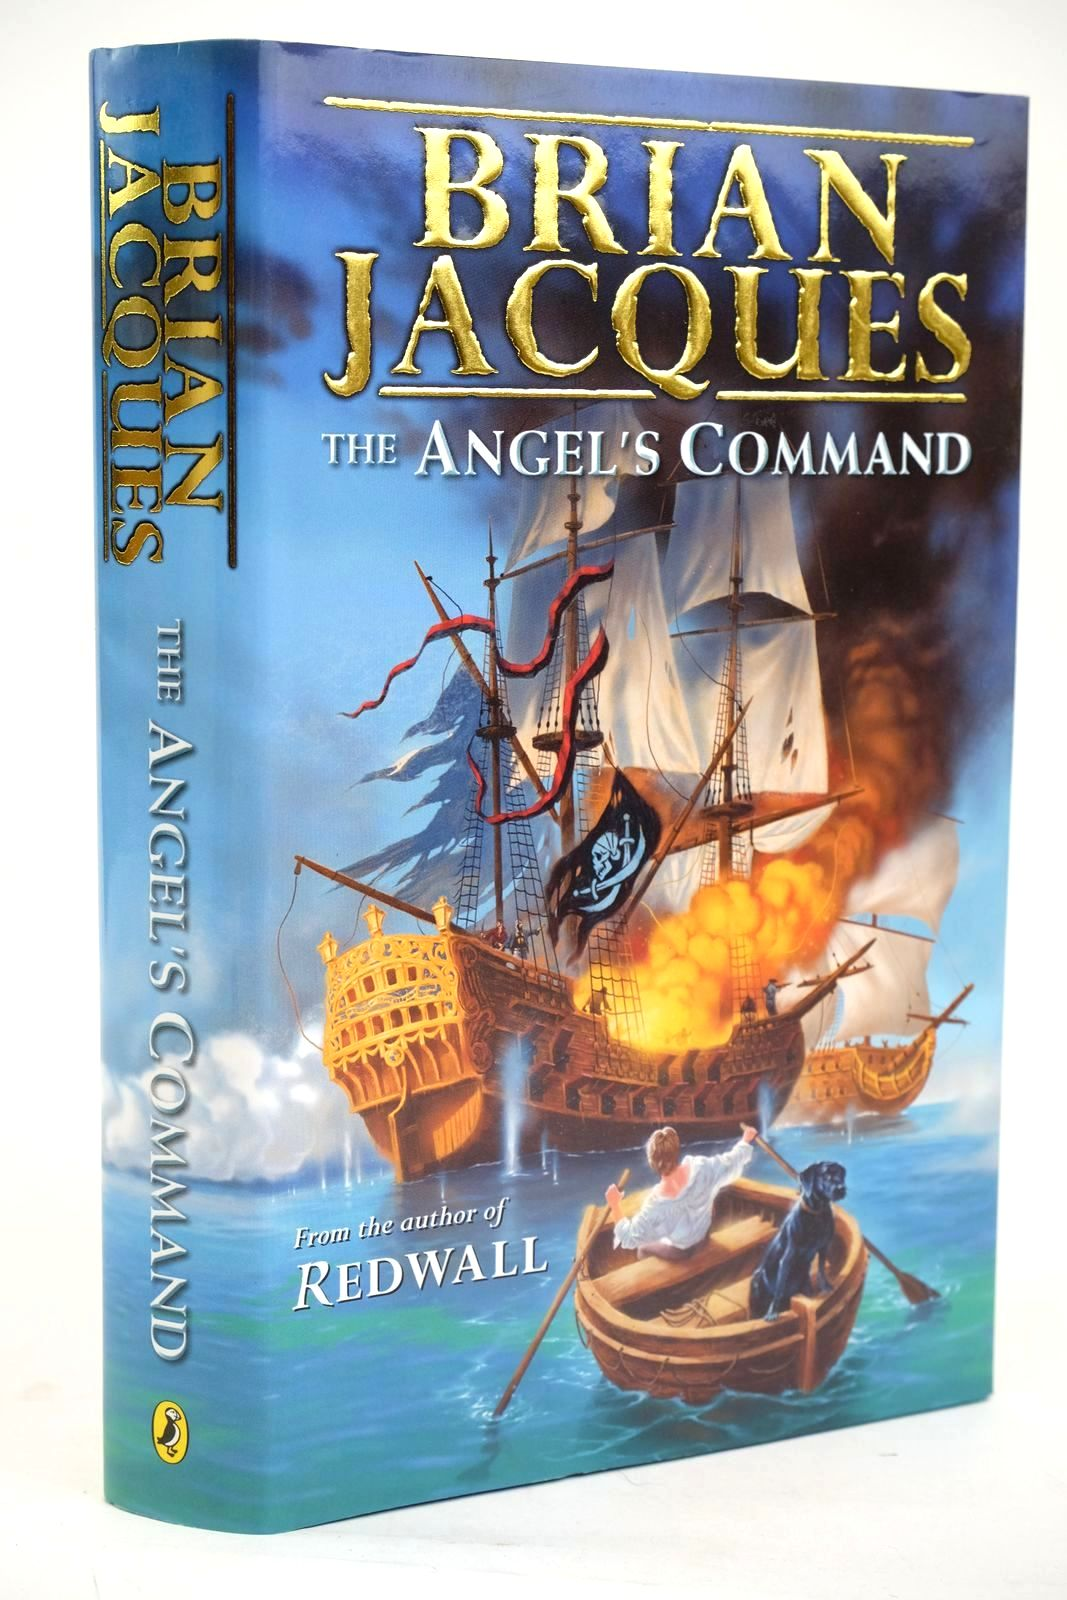 Photo of THE ANGEL'S COMMAND written by Jacques, Brian illustrated by Elliot, David published by Puffin Books (STOCK CODE: 1319398)  for sale by Stella & Rose's Books